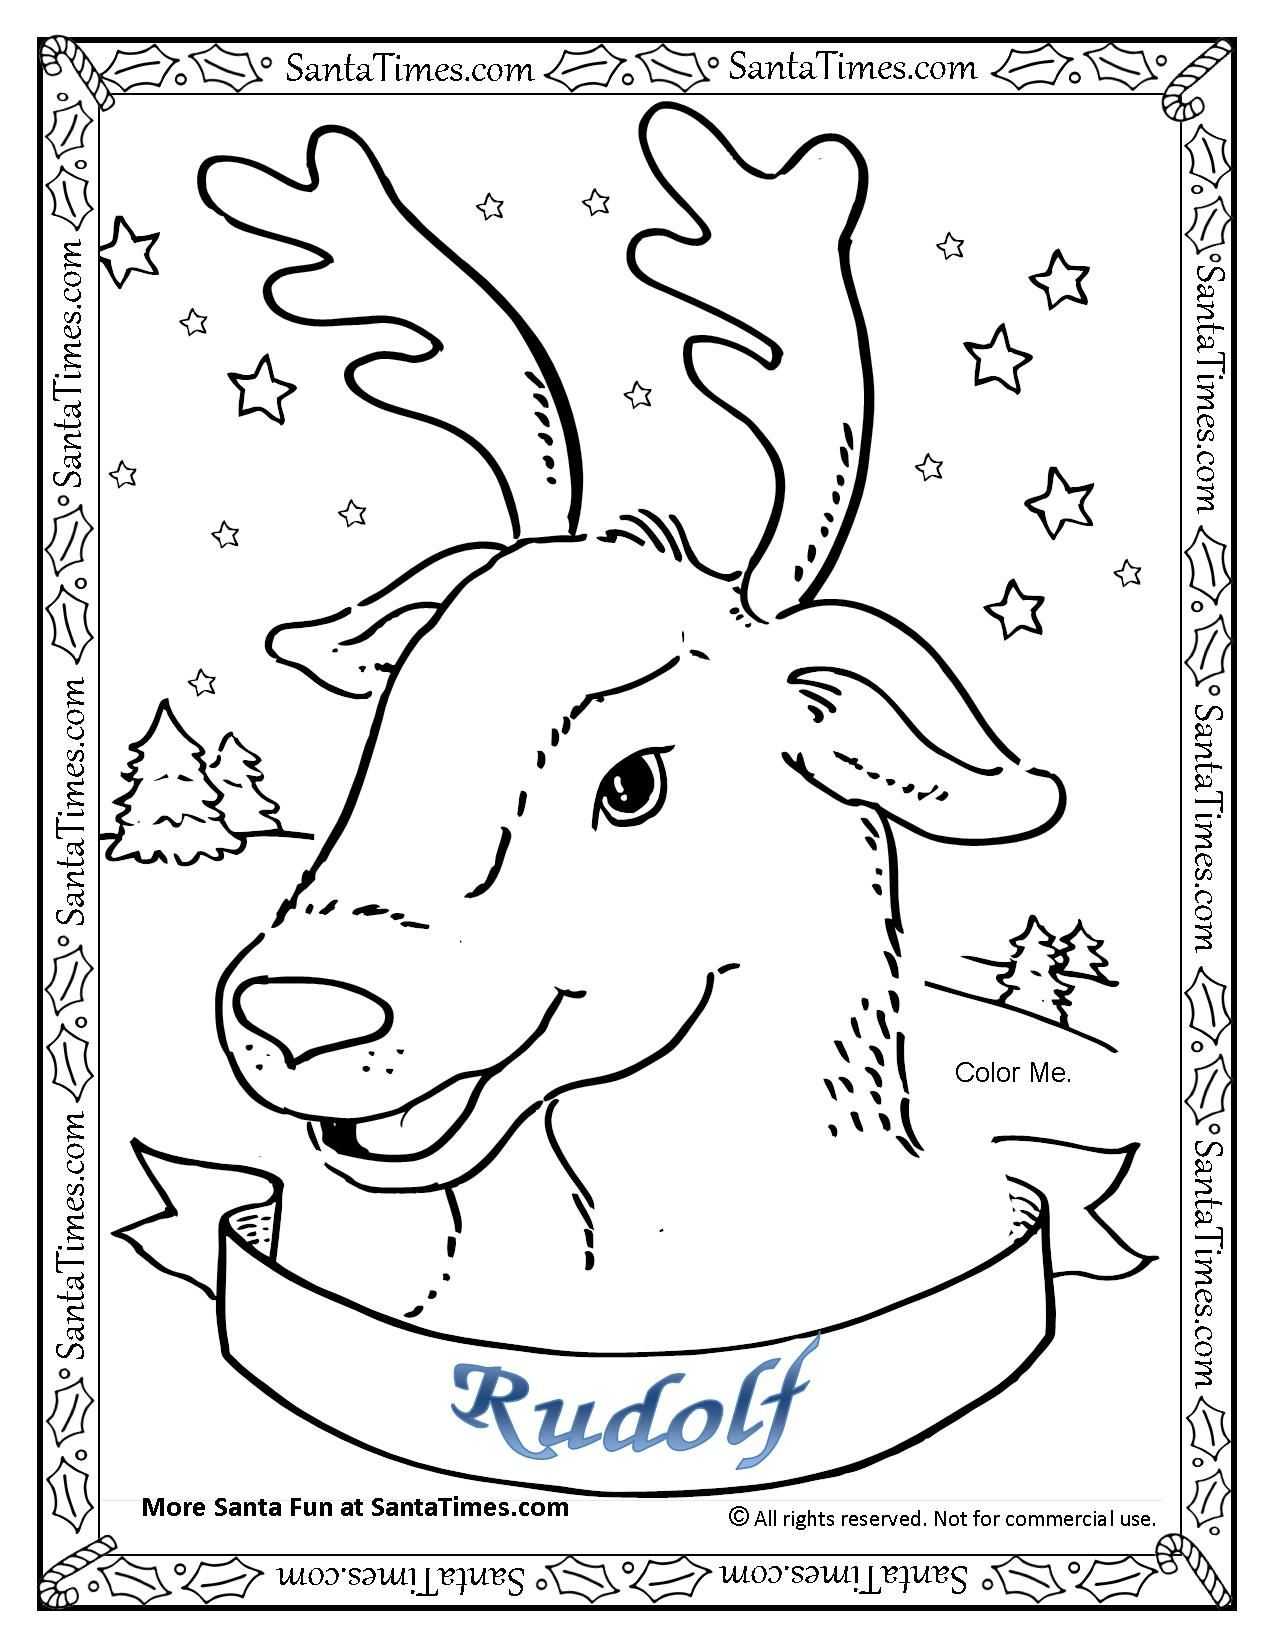 Rudolf The Red Nosed Reindeer Coloring Page Printout More